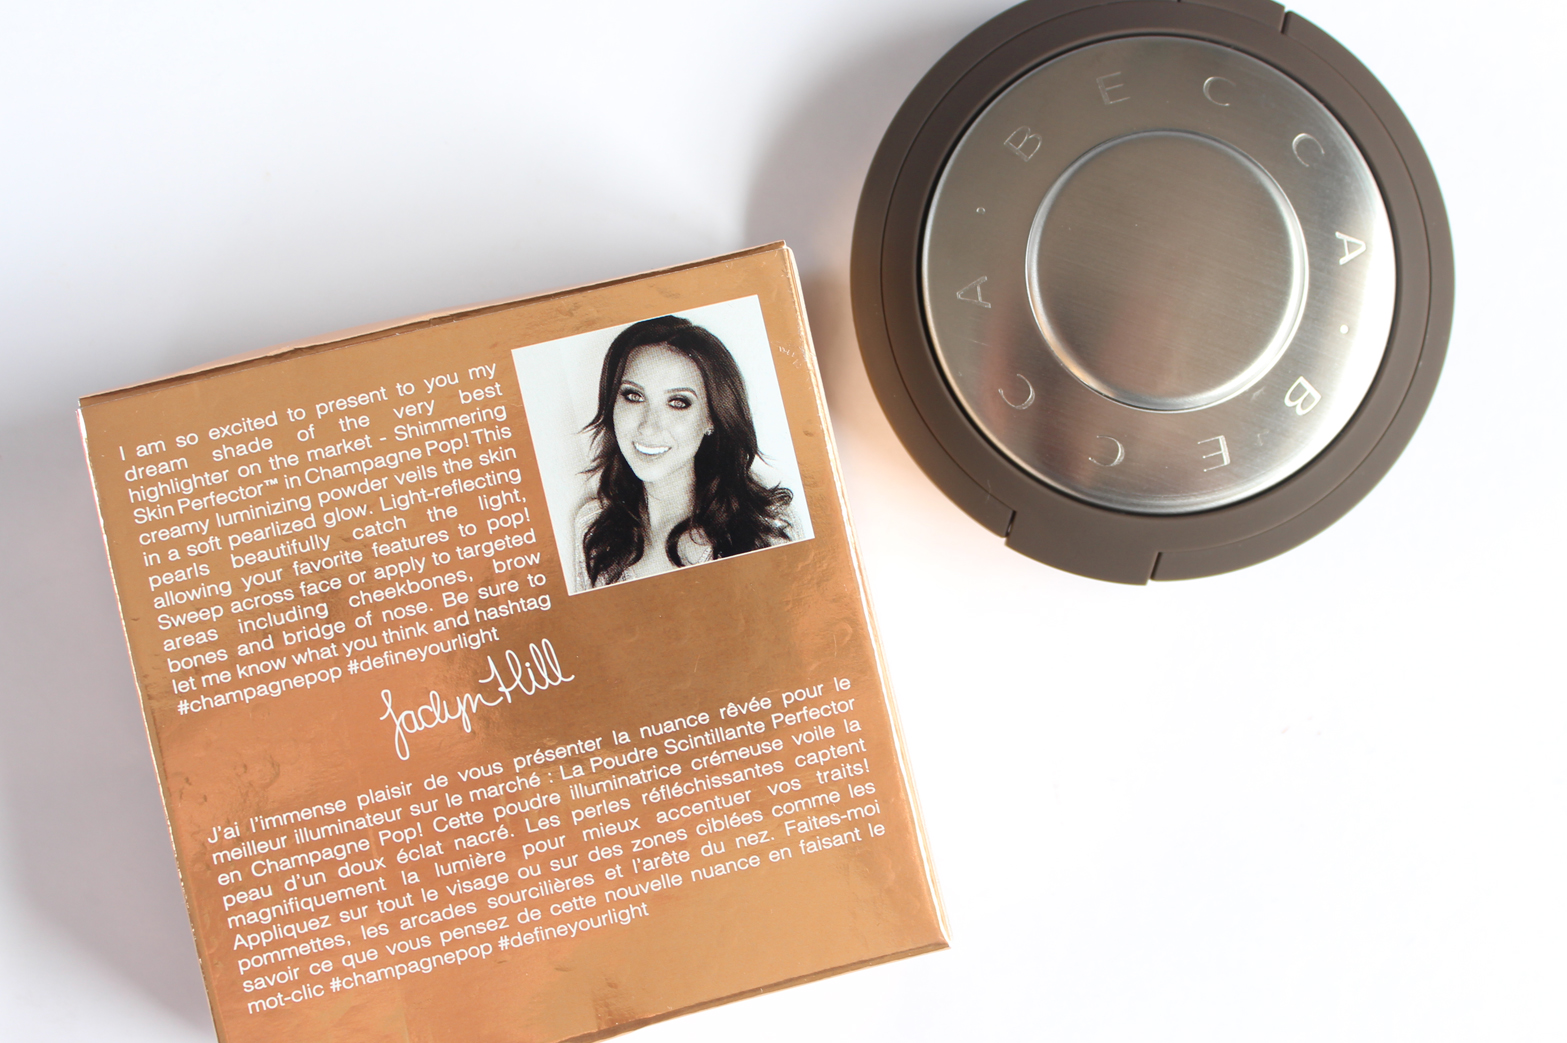 SEPHORA NEW ZEALAND | Haul - Reviews + Swatches - BECCA x Jaclyn Hill Shimmering Skin Perfector Pressed in Champagne Pop - CassandraMyee